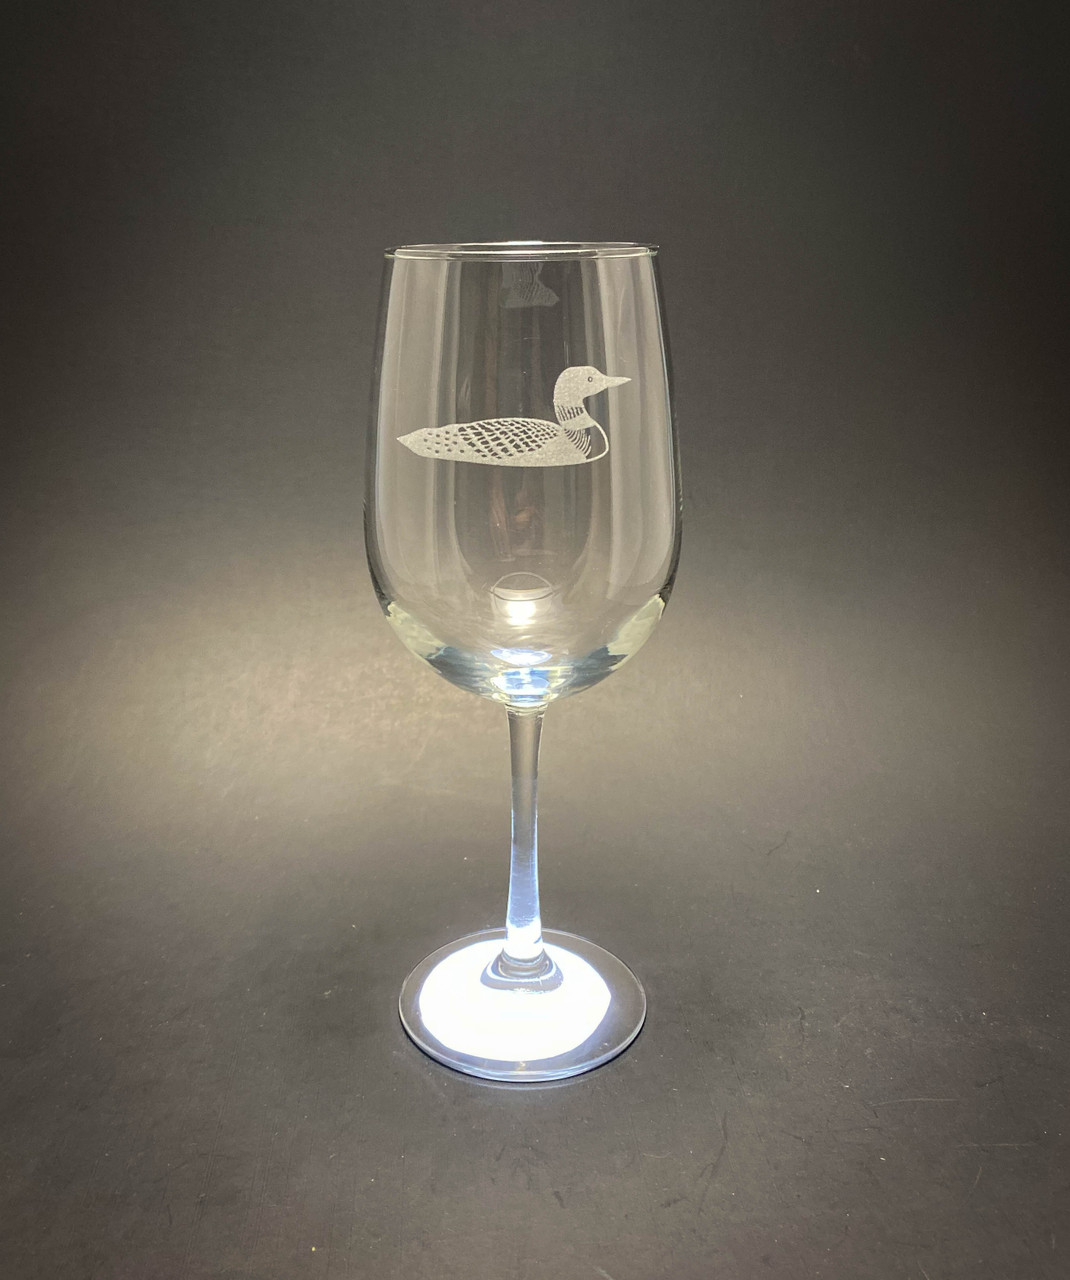 Loon - 18.5 oz Stemmed Wine Glass